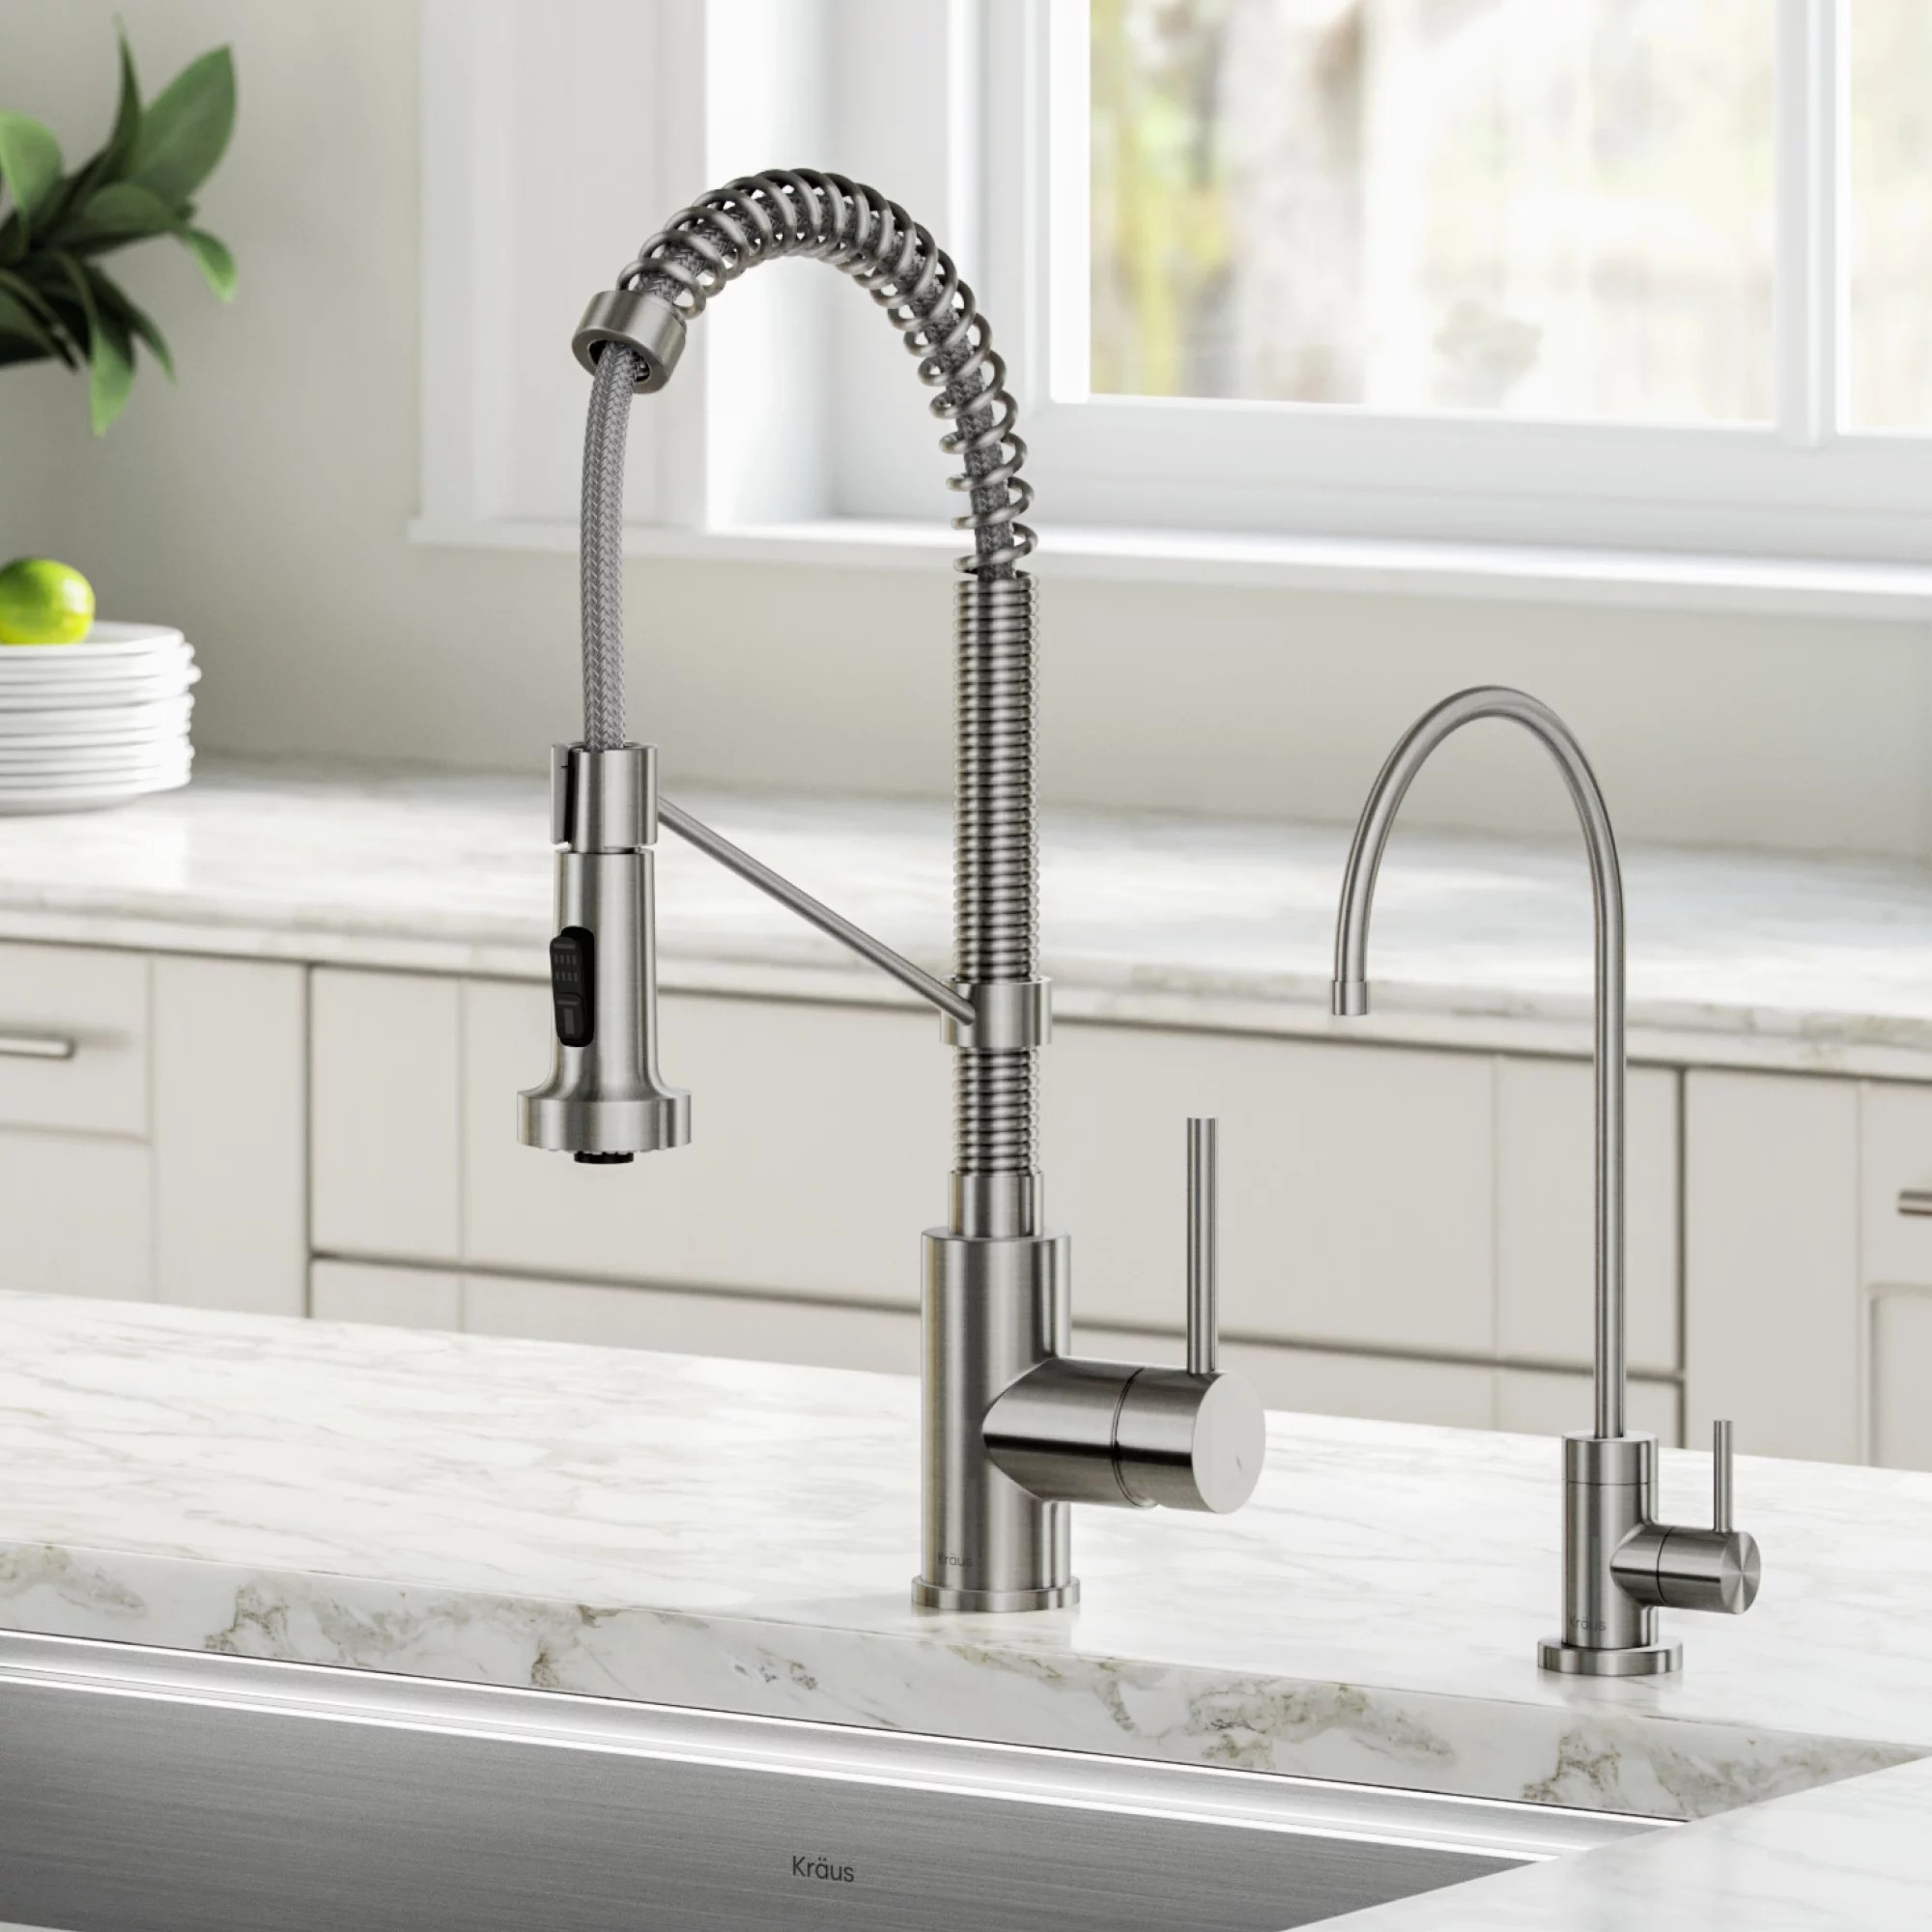 kraus bolden commercial style pull down kitchen faucet and purita water filter faucet combo in spot free stainless steel walmart com